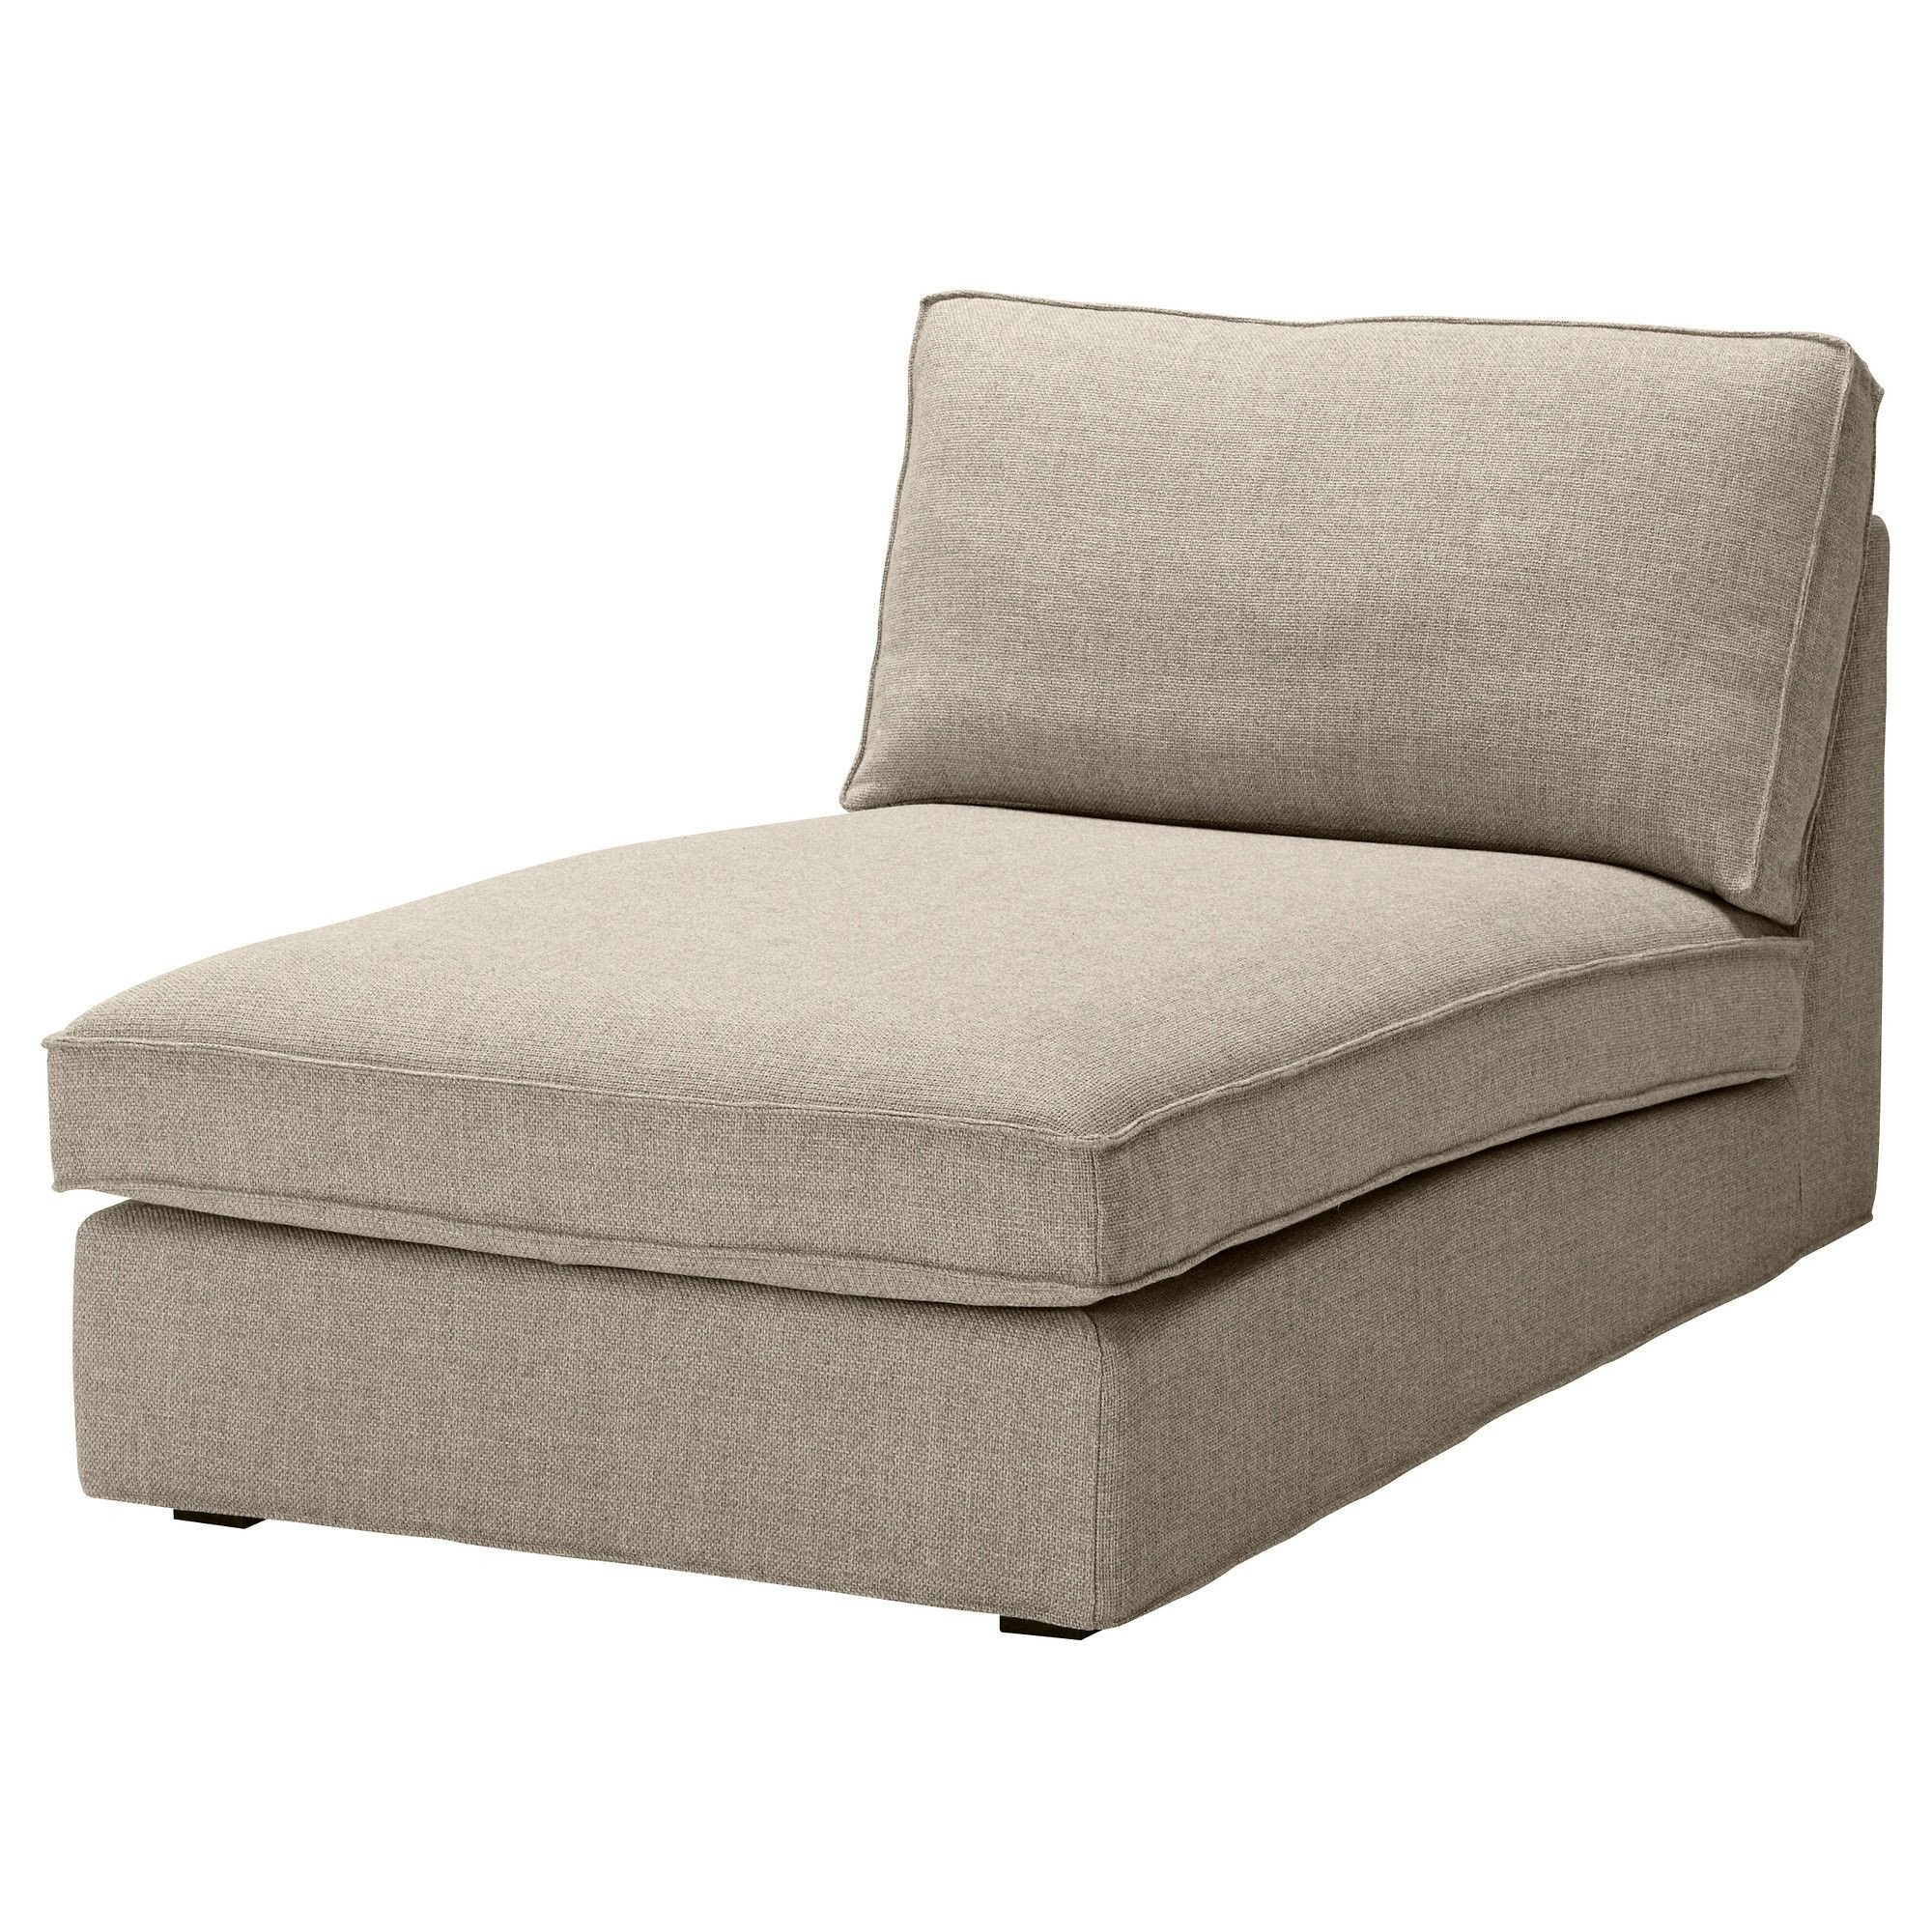 Comfy Lounge Chairs for Bedroom Awesome Us Furniture and Home Furnishings